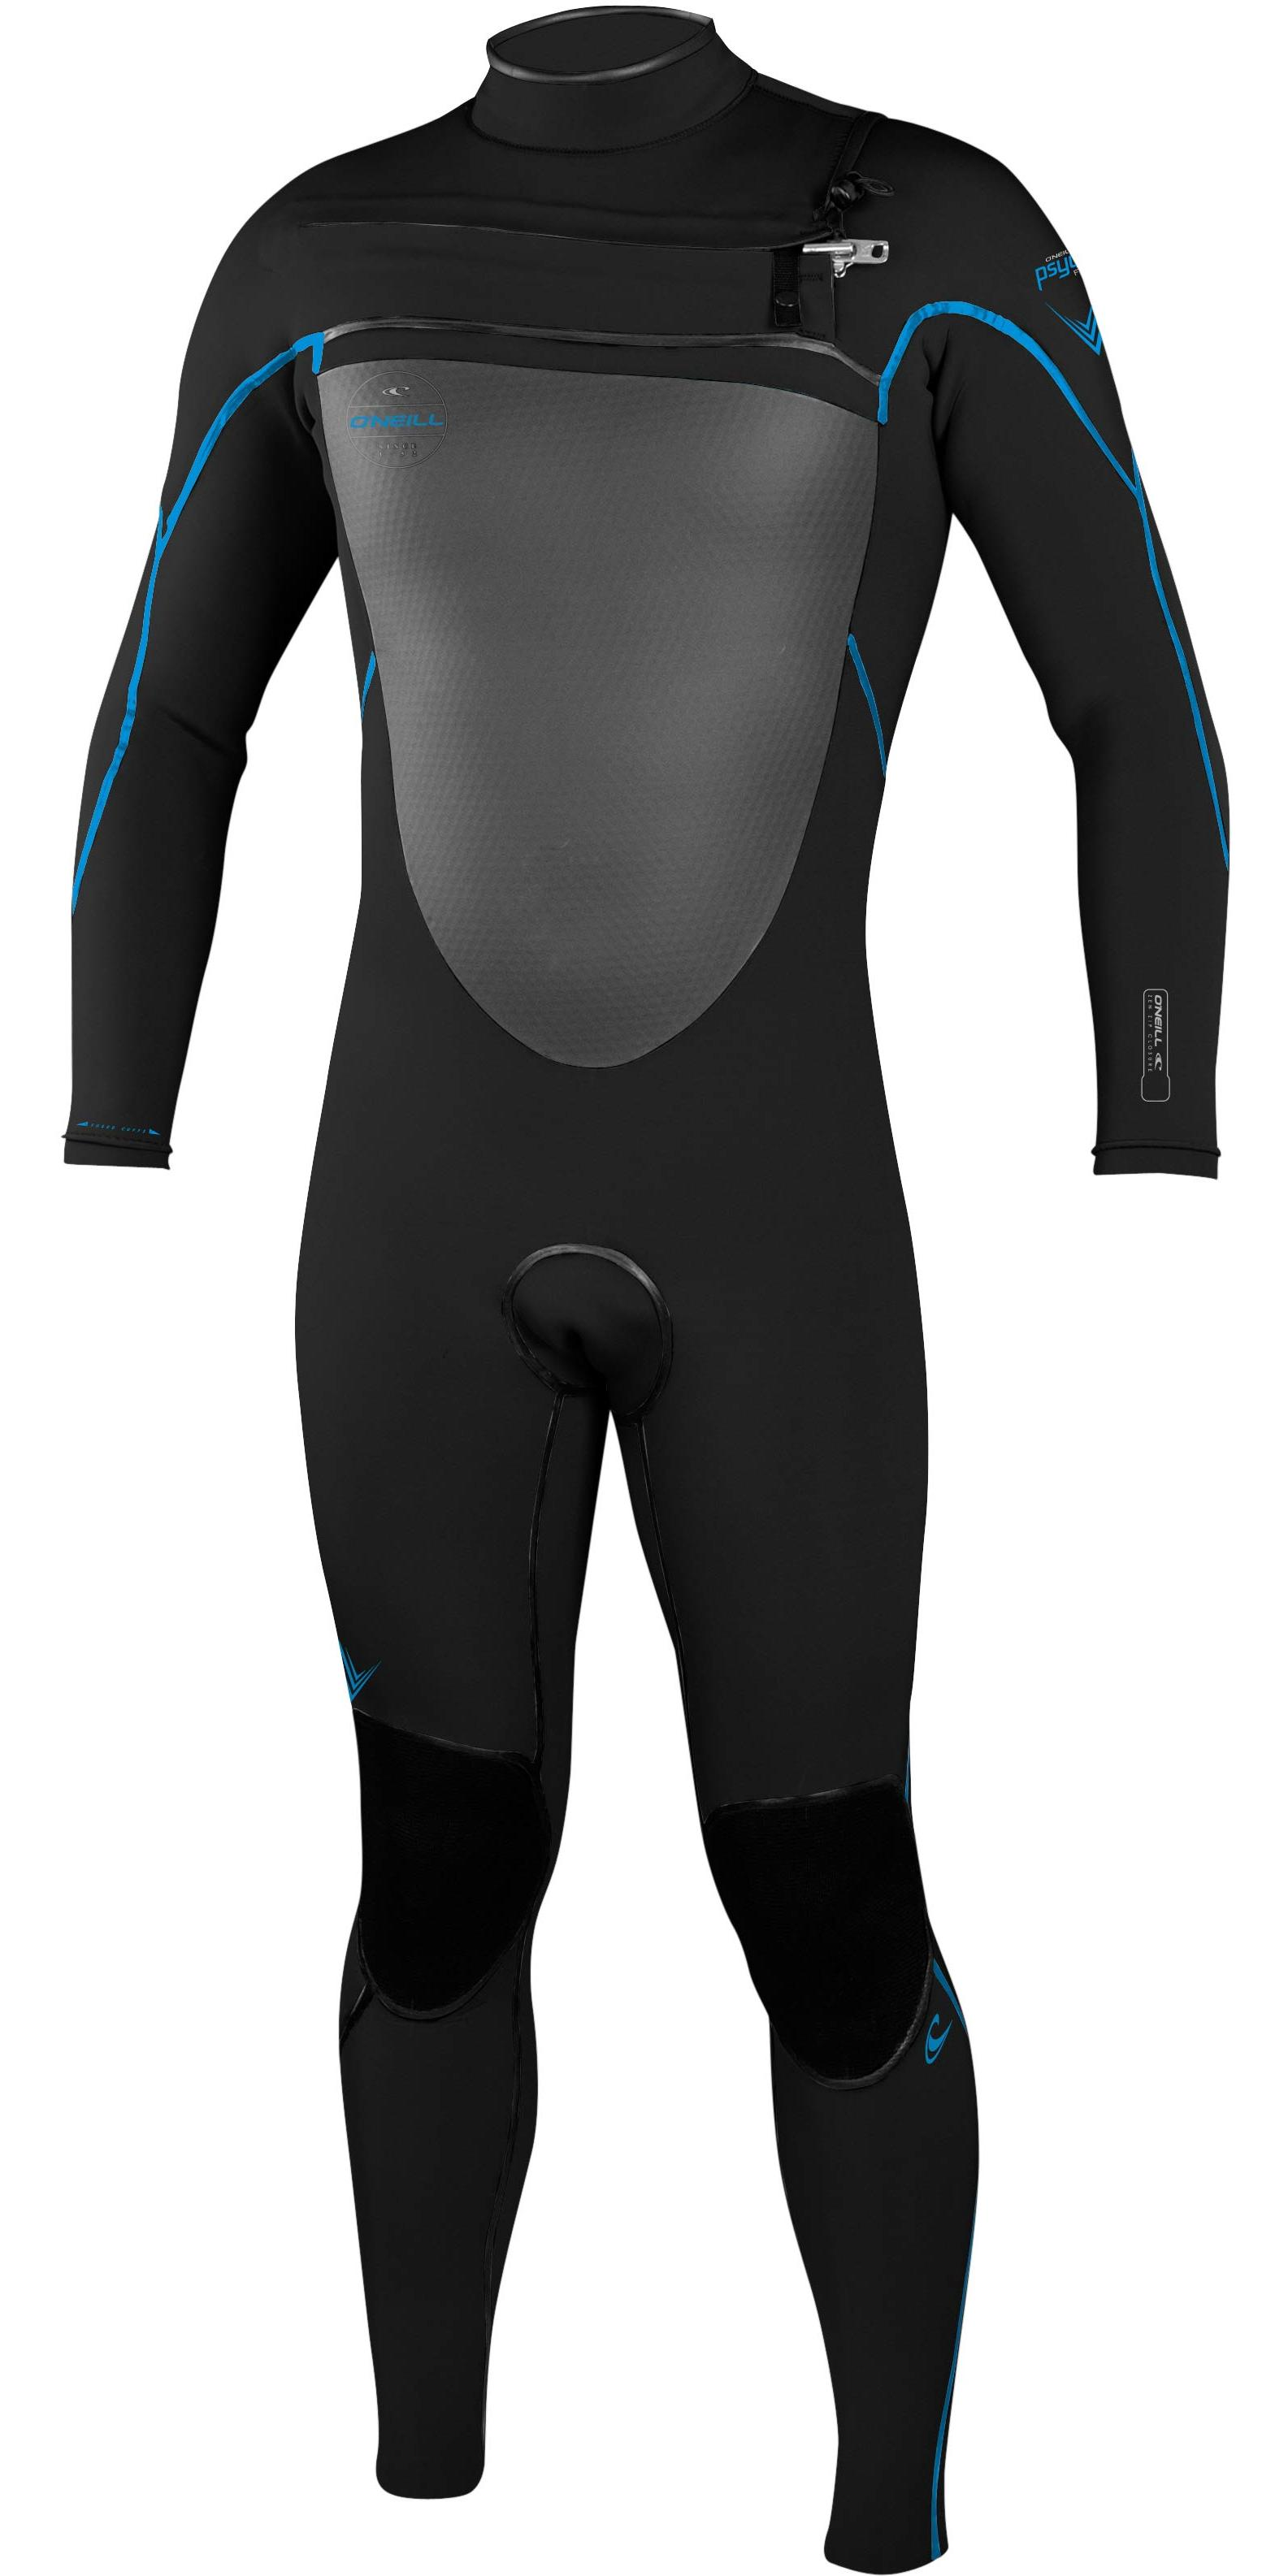 2017 O'Neill Psycho Freak 3/2mm Chest Zip Wetsuit BLACK / BRITE BLUE 4567